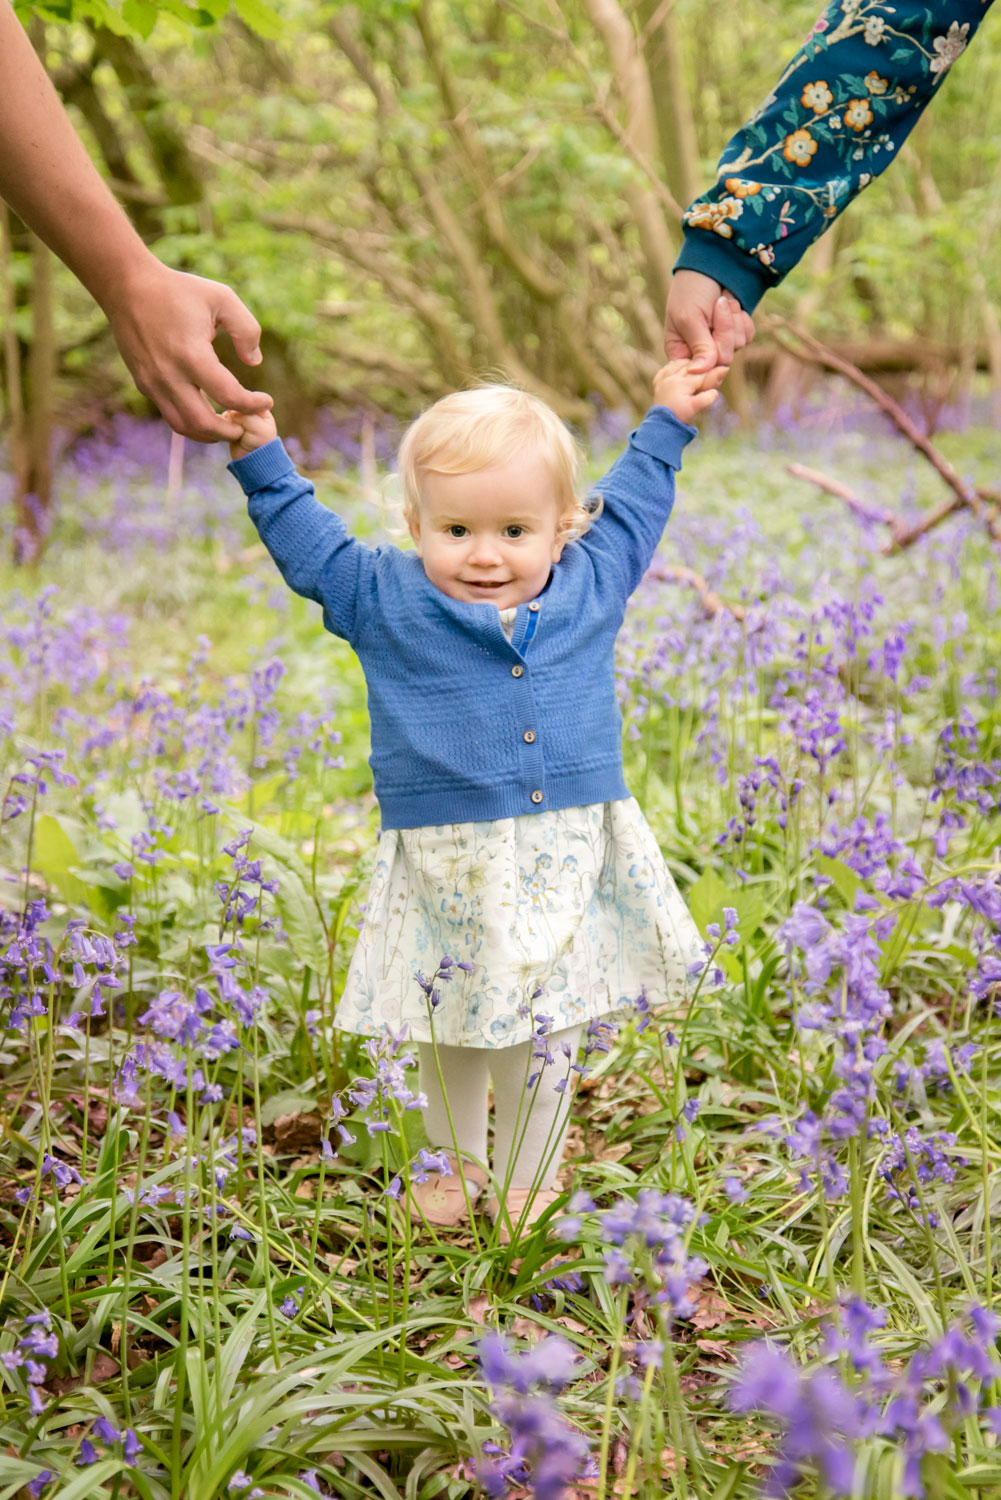 Baby_photography_Ely_Cambridgeshire-learning-to-walk-in-bluebell-wood.jpg